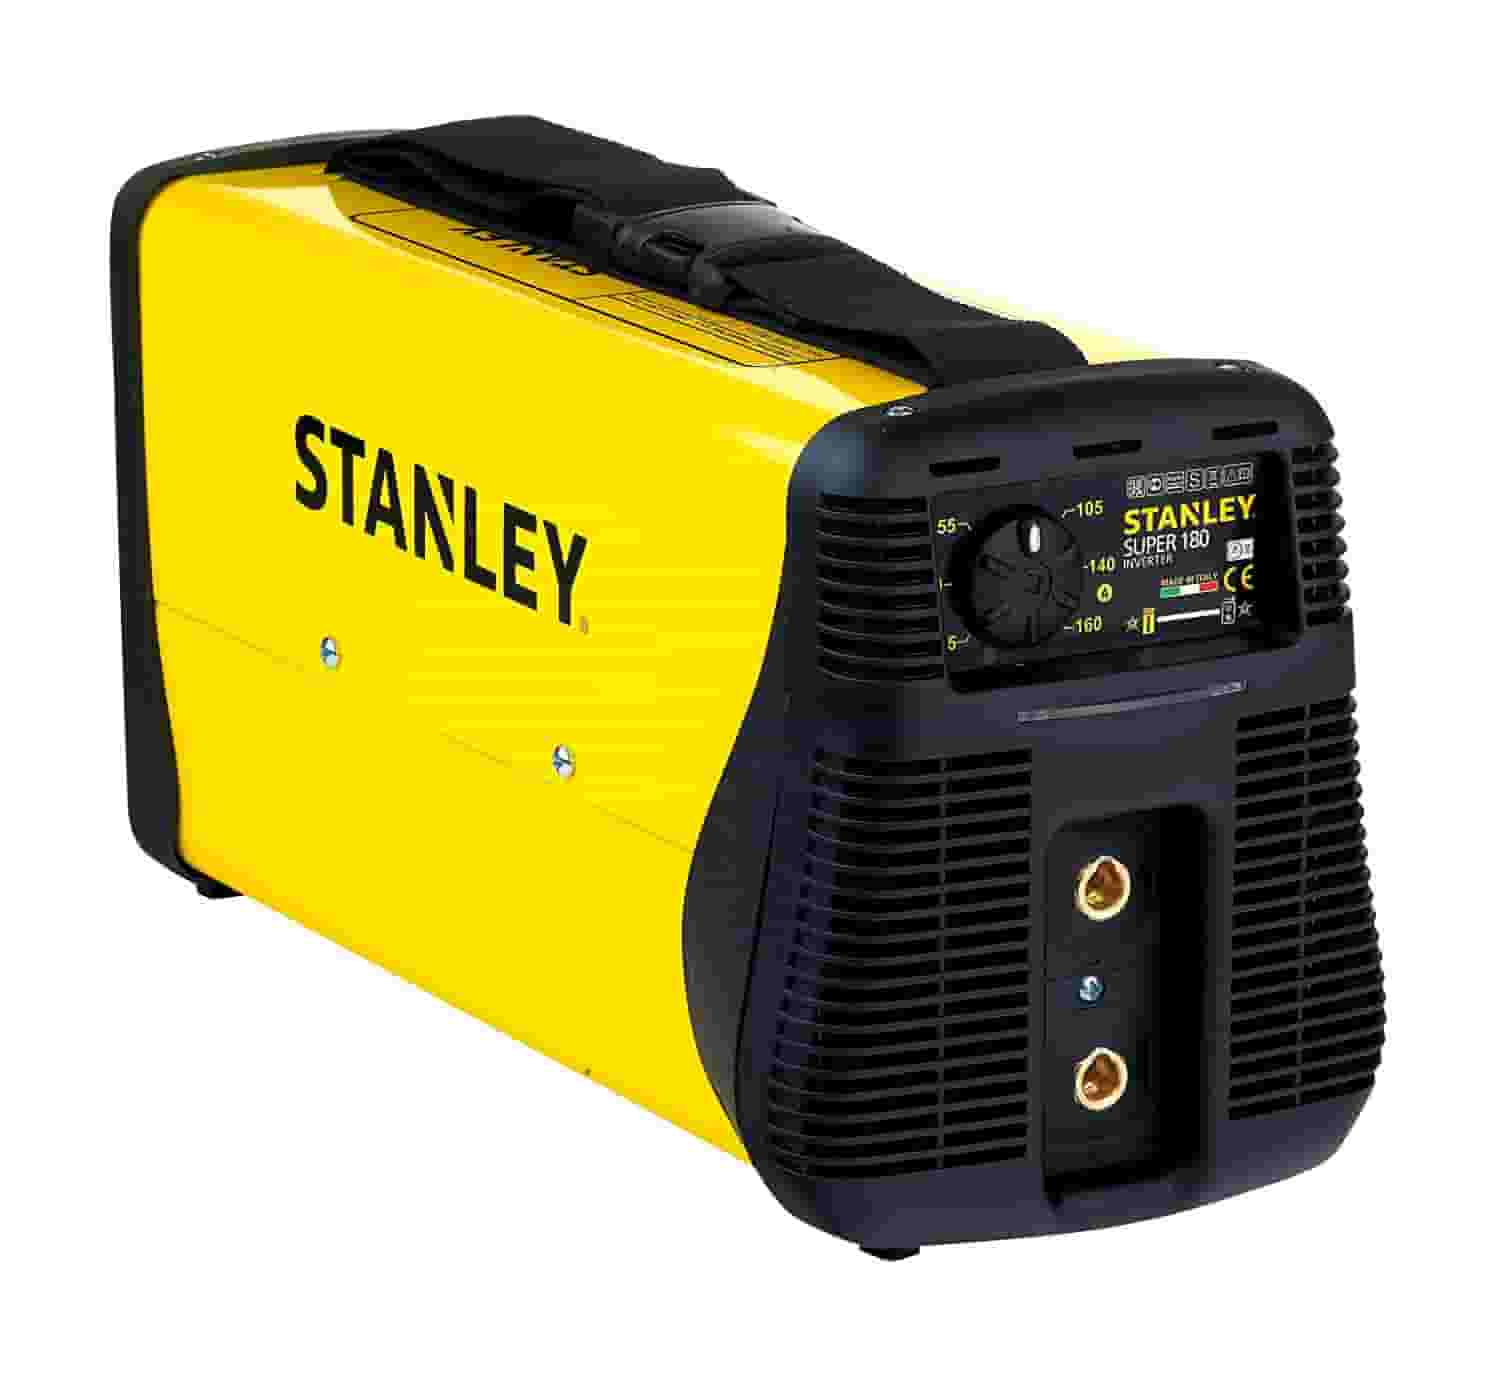 Stanley 460180 Reseña